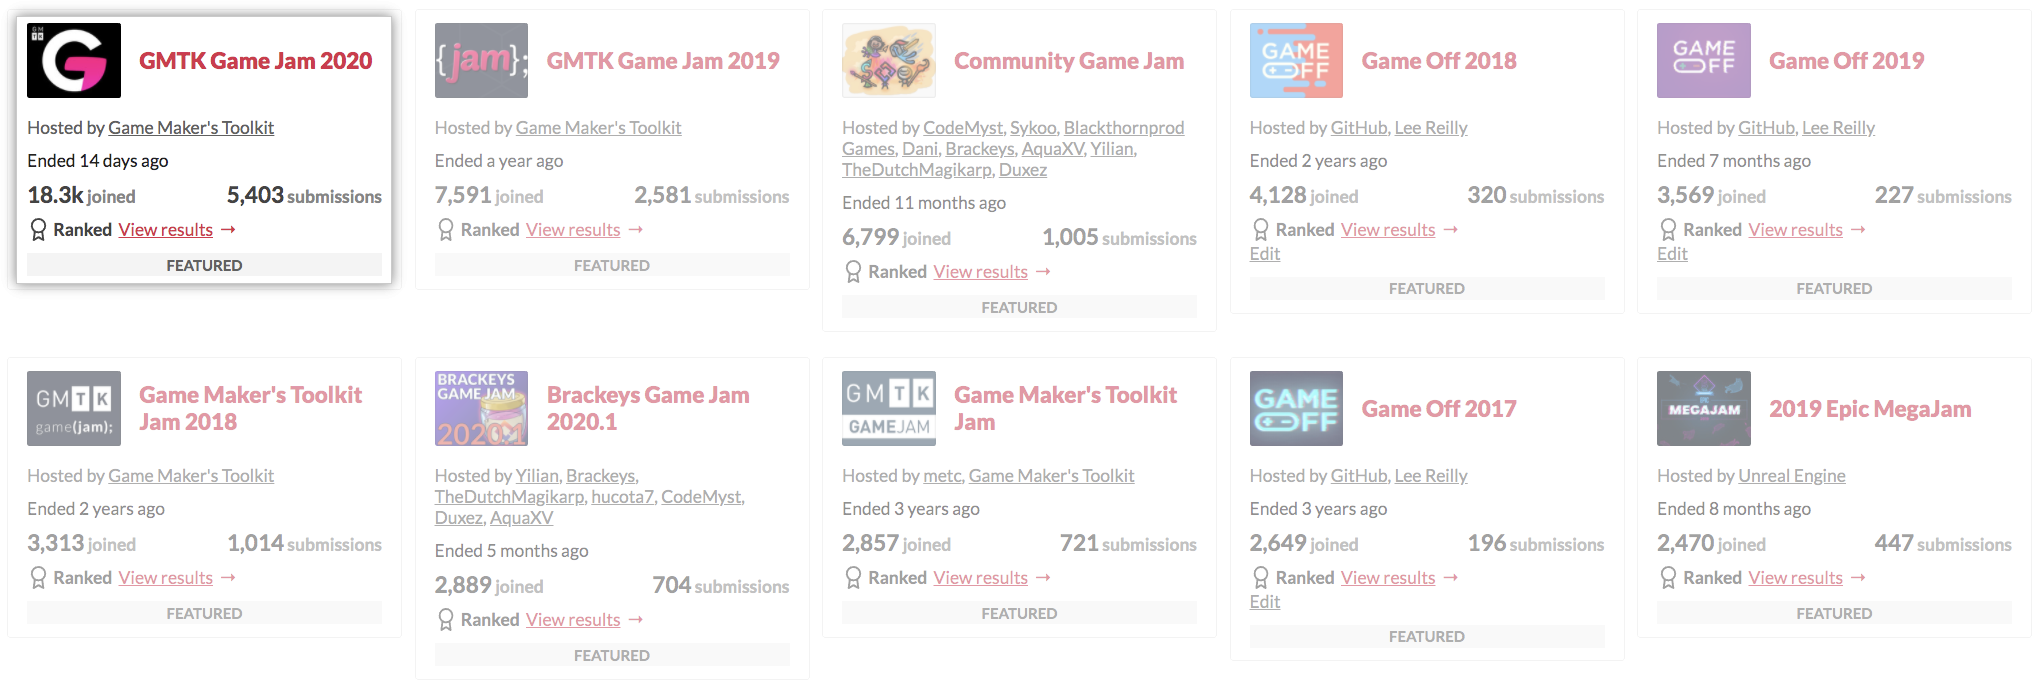 Screenshot showing top game jams on itch.io